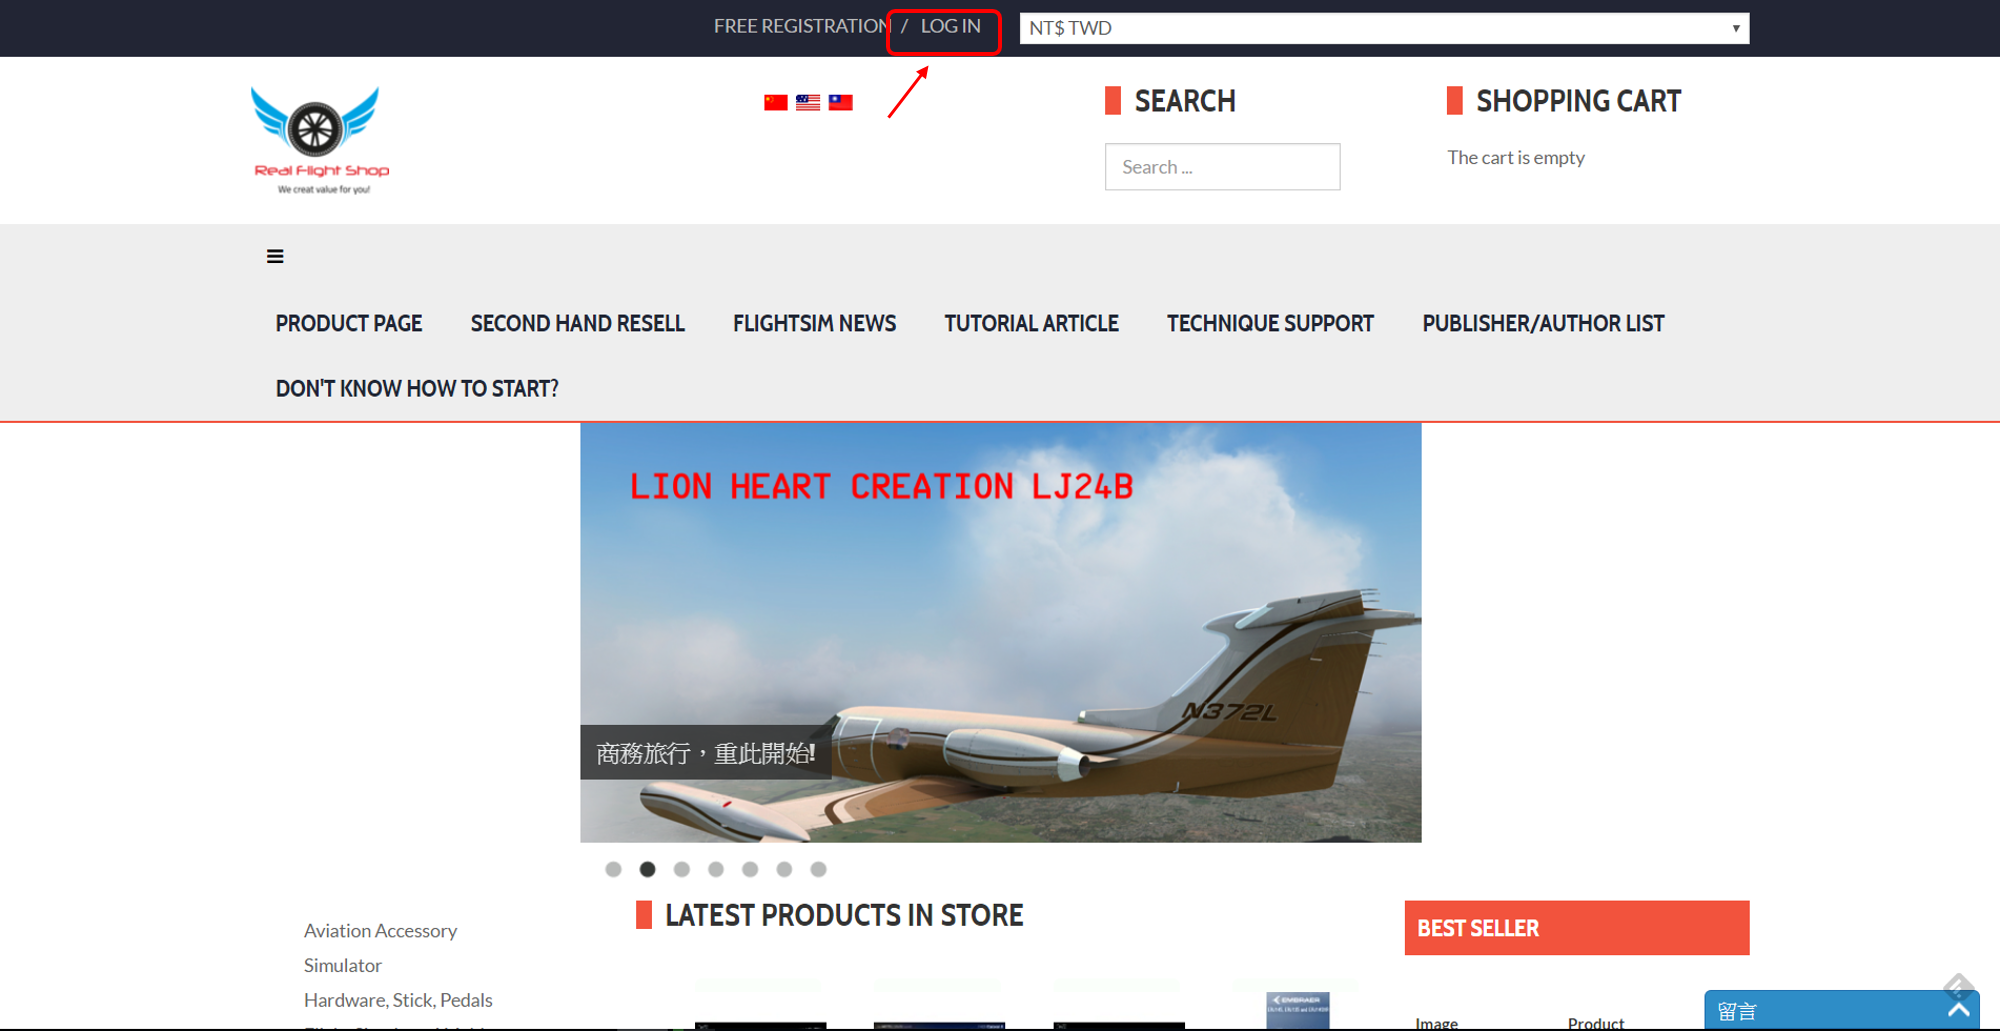 Real Flight Shop : Your first source of Flight Simulation